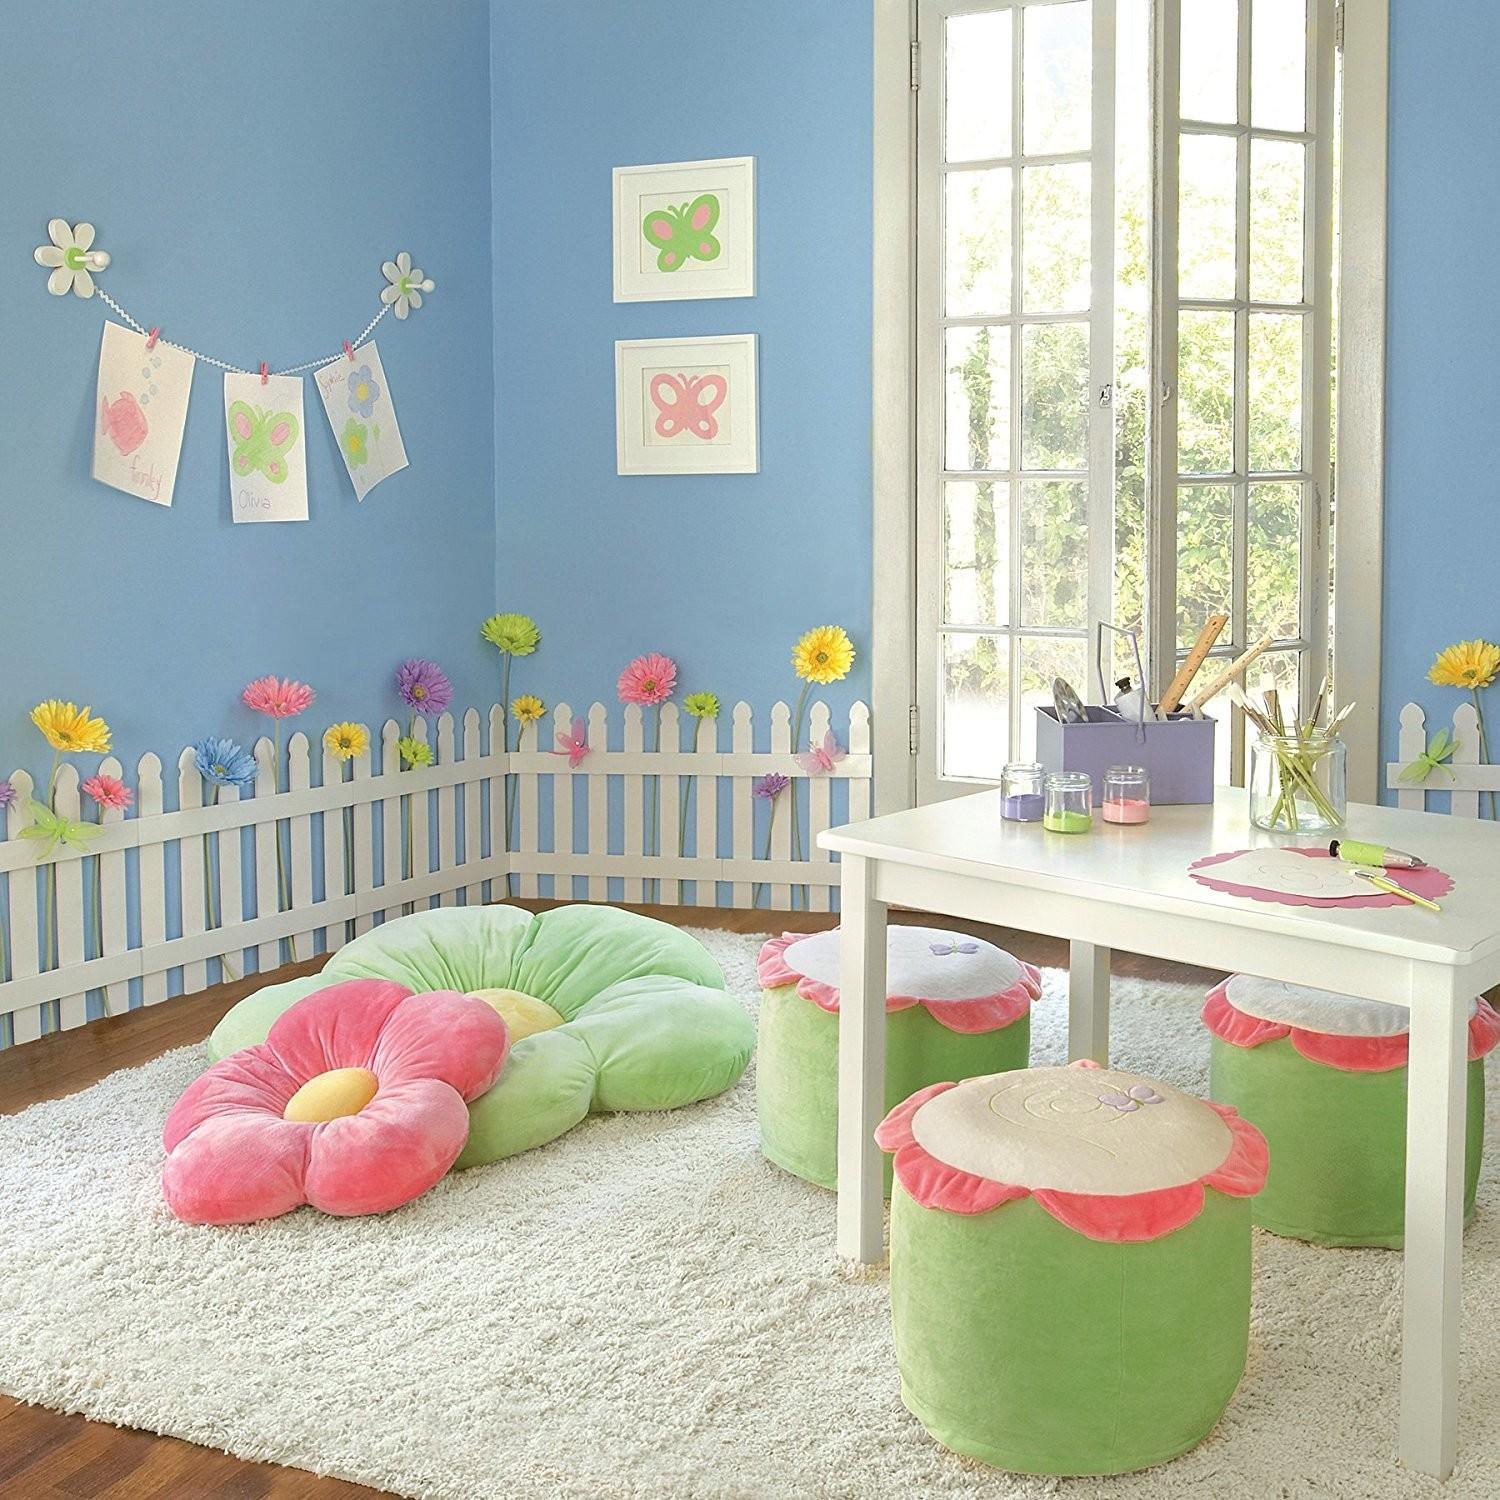 White Wooden Picket Fences Kids Room Wall Border